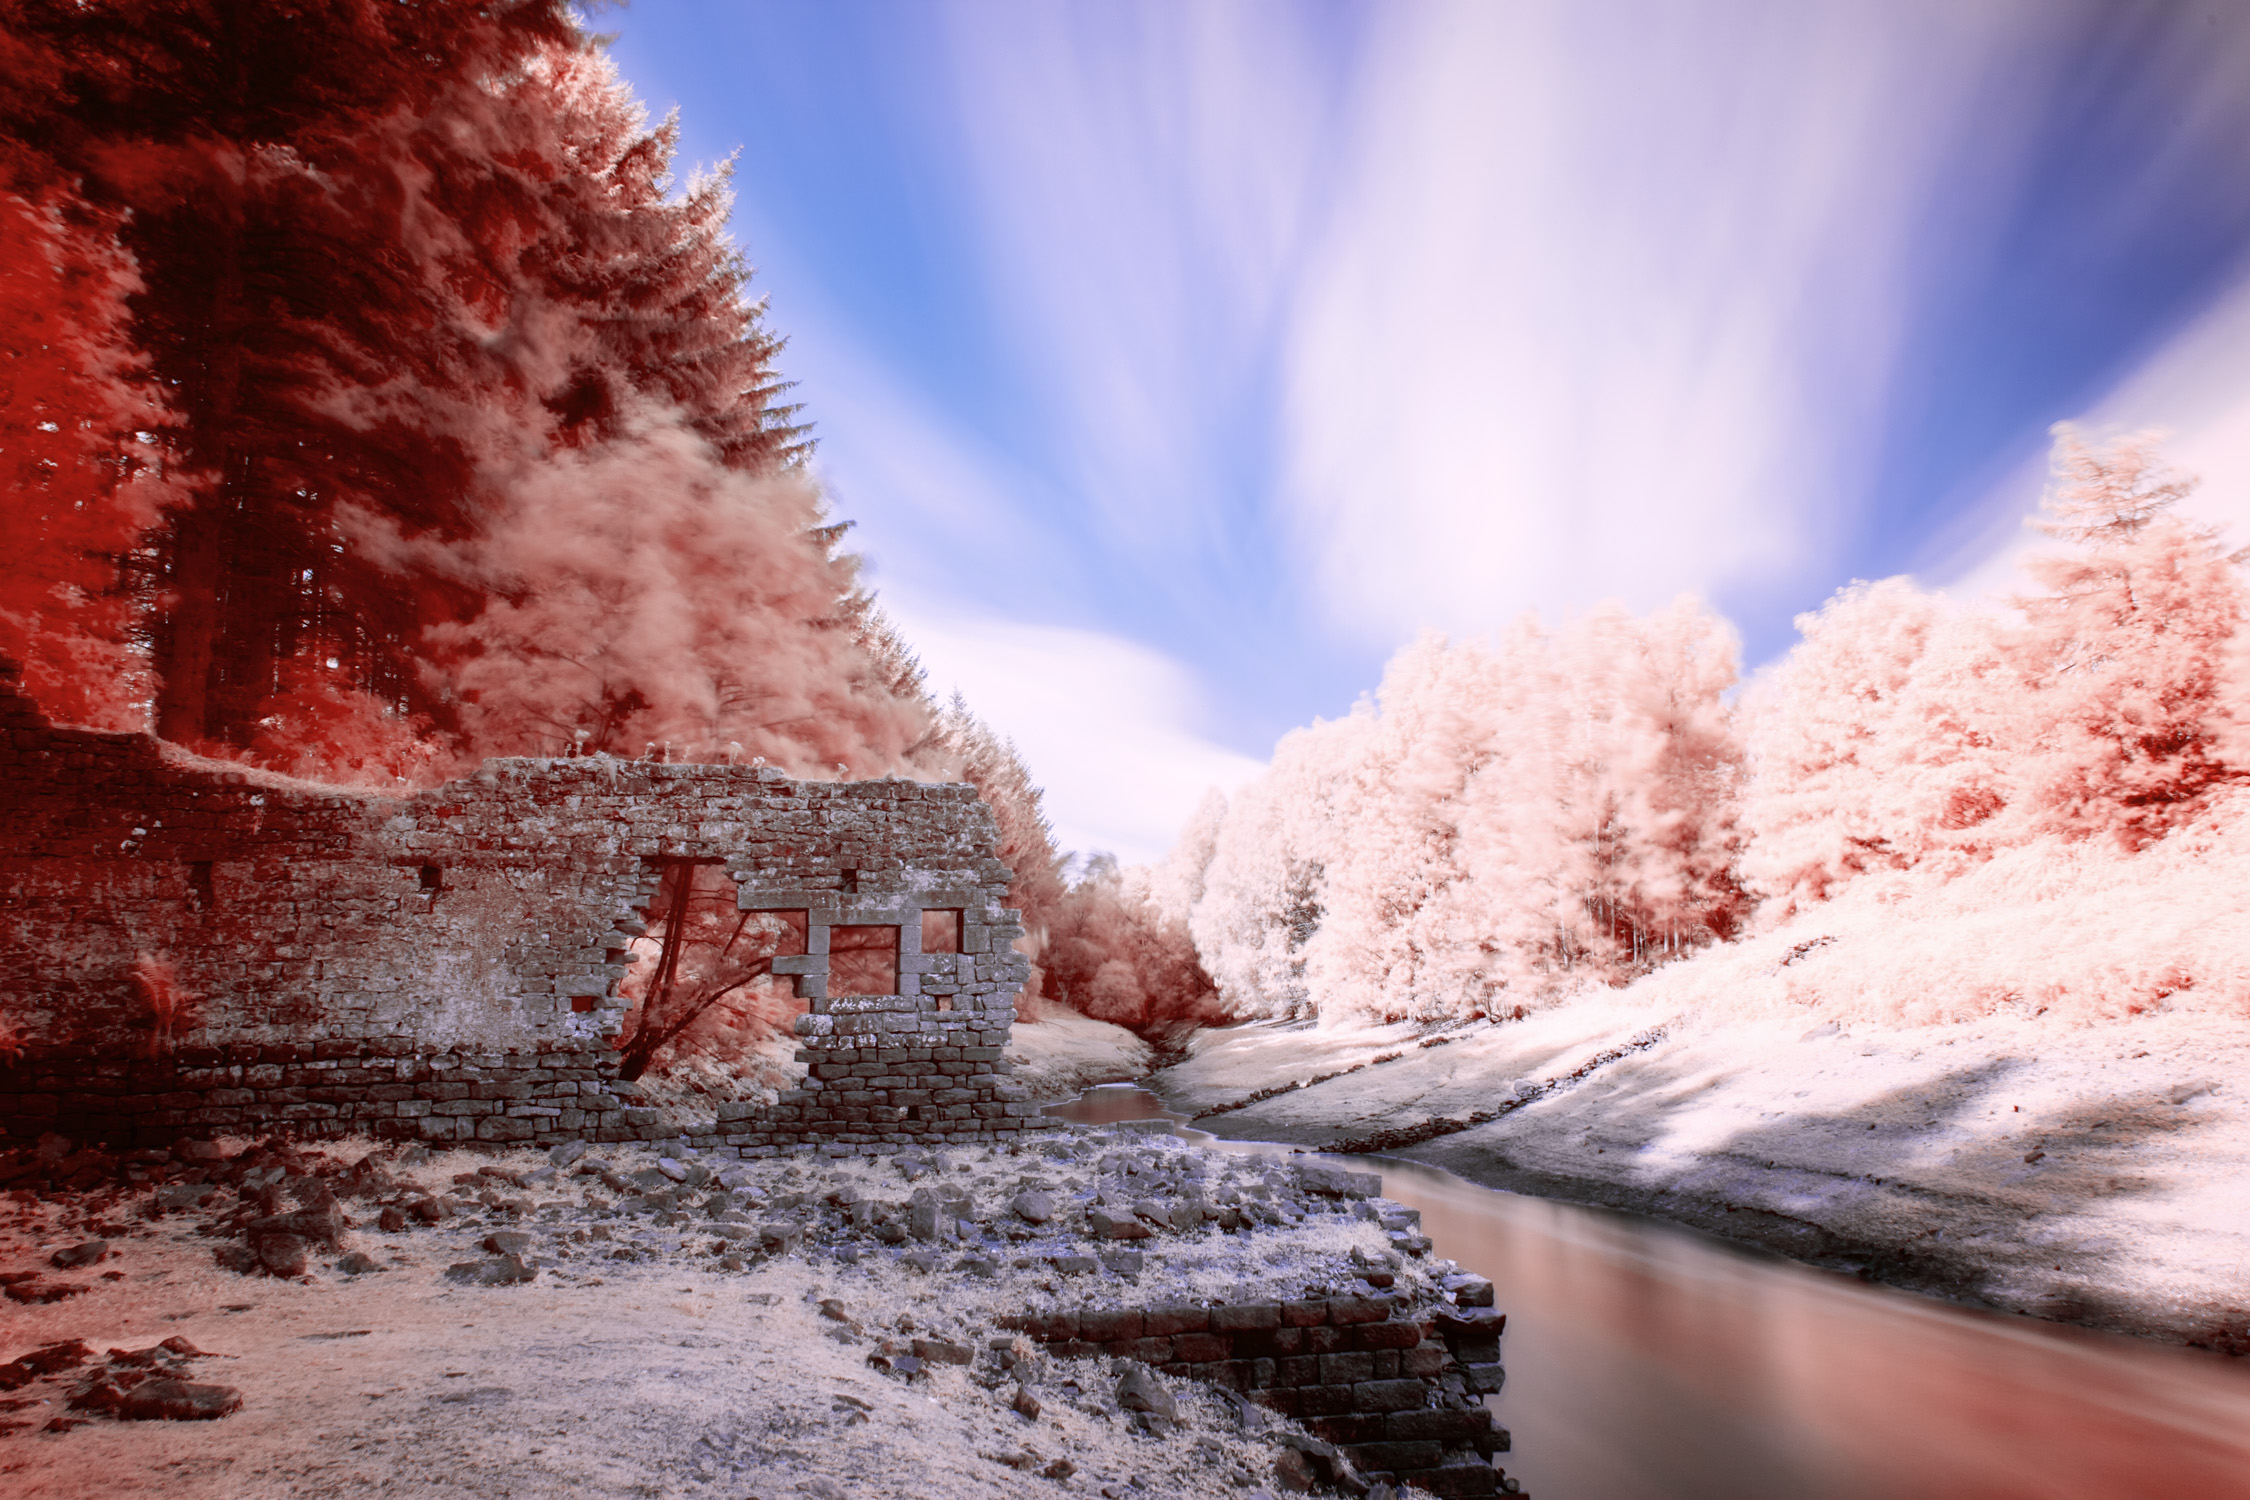 edit-infrared-photos.jpg